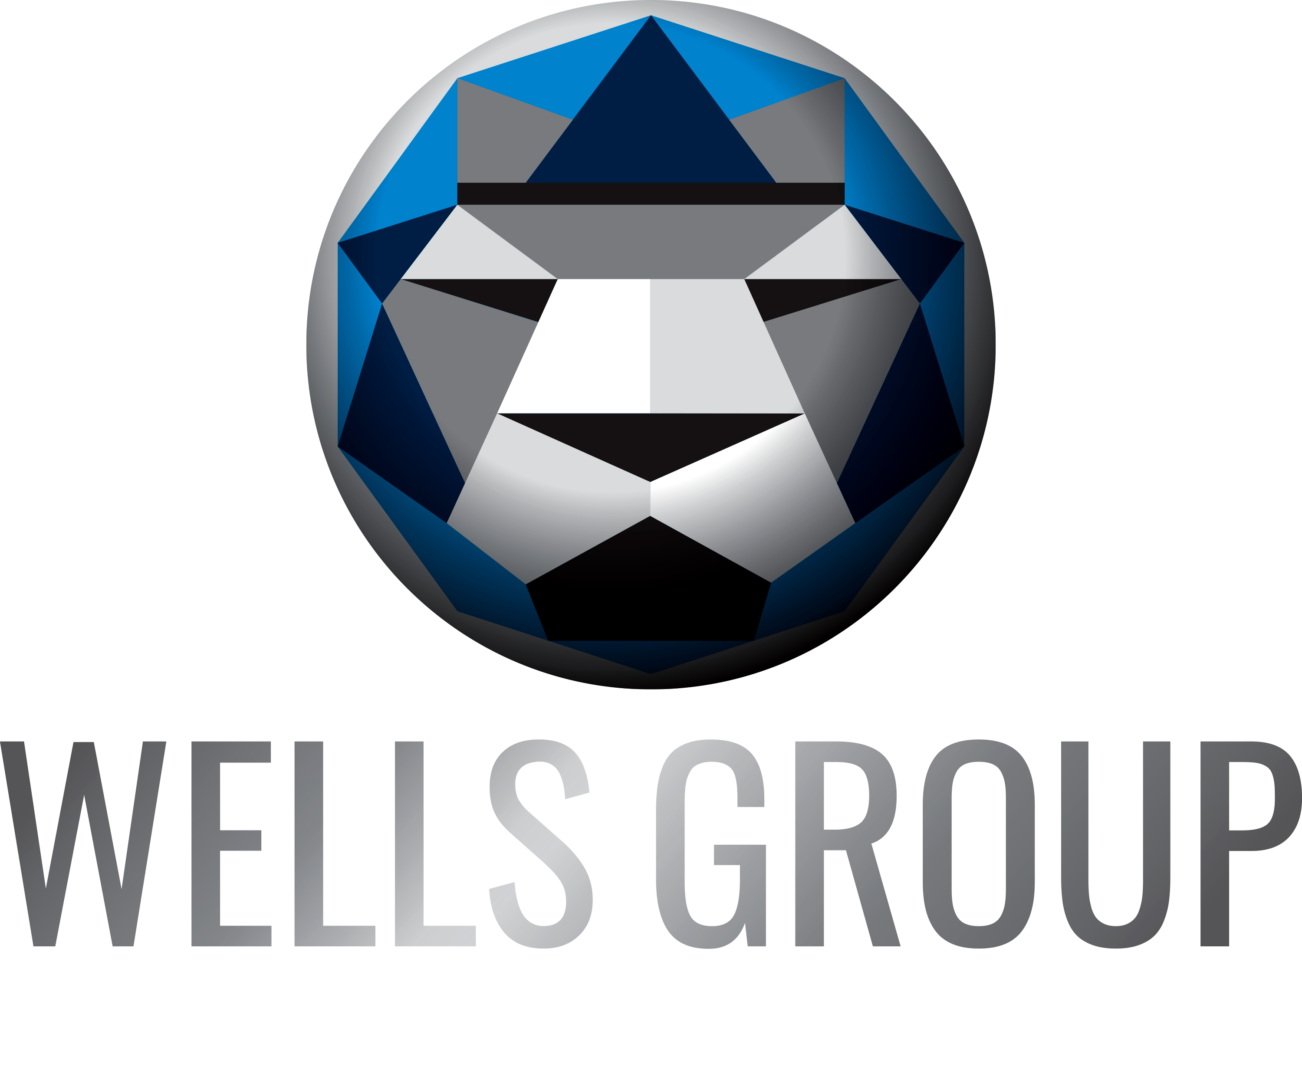 Wells Group silver